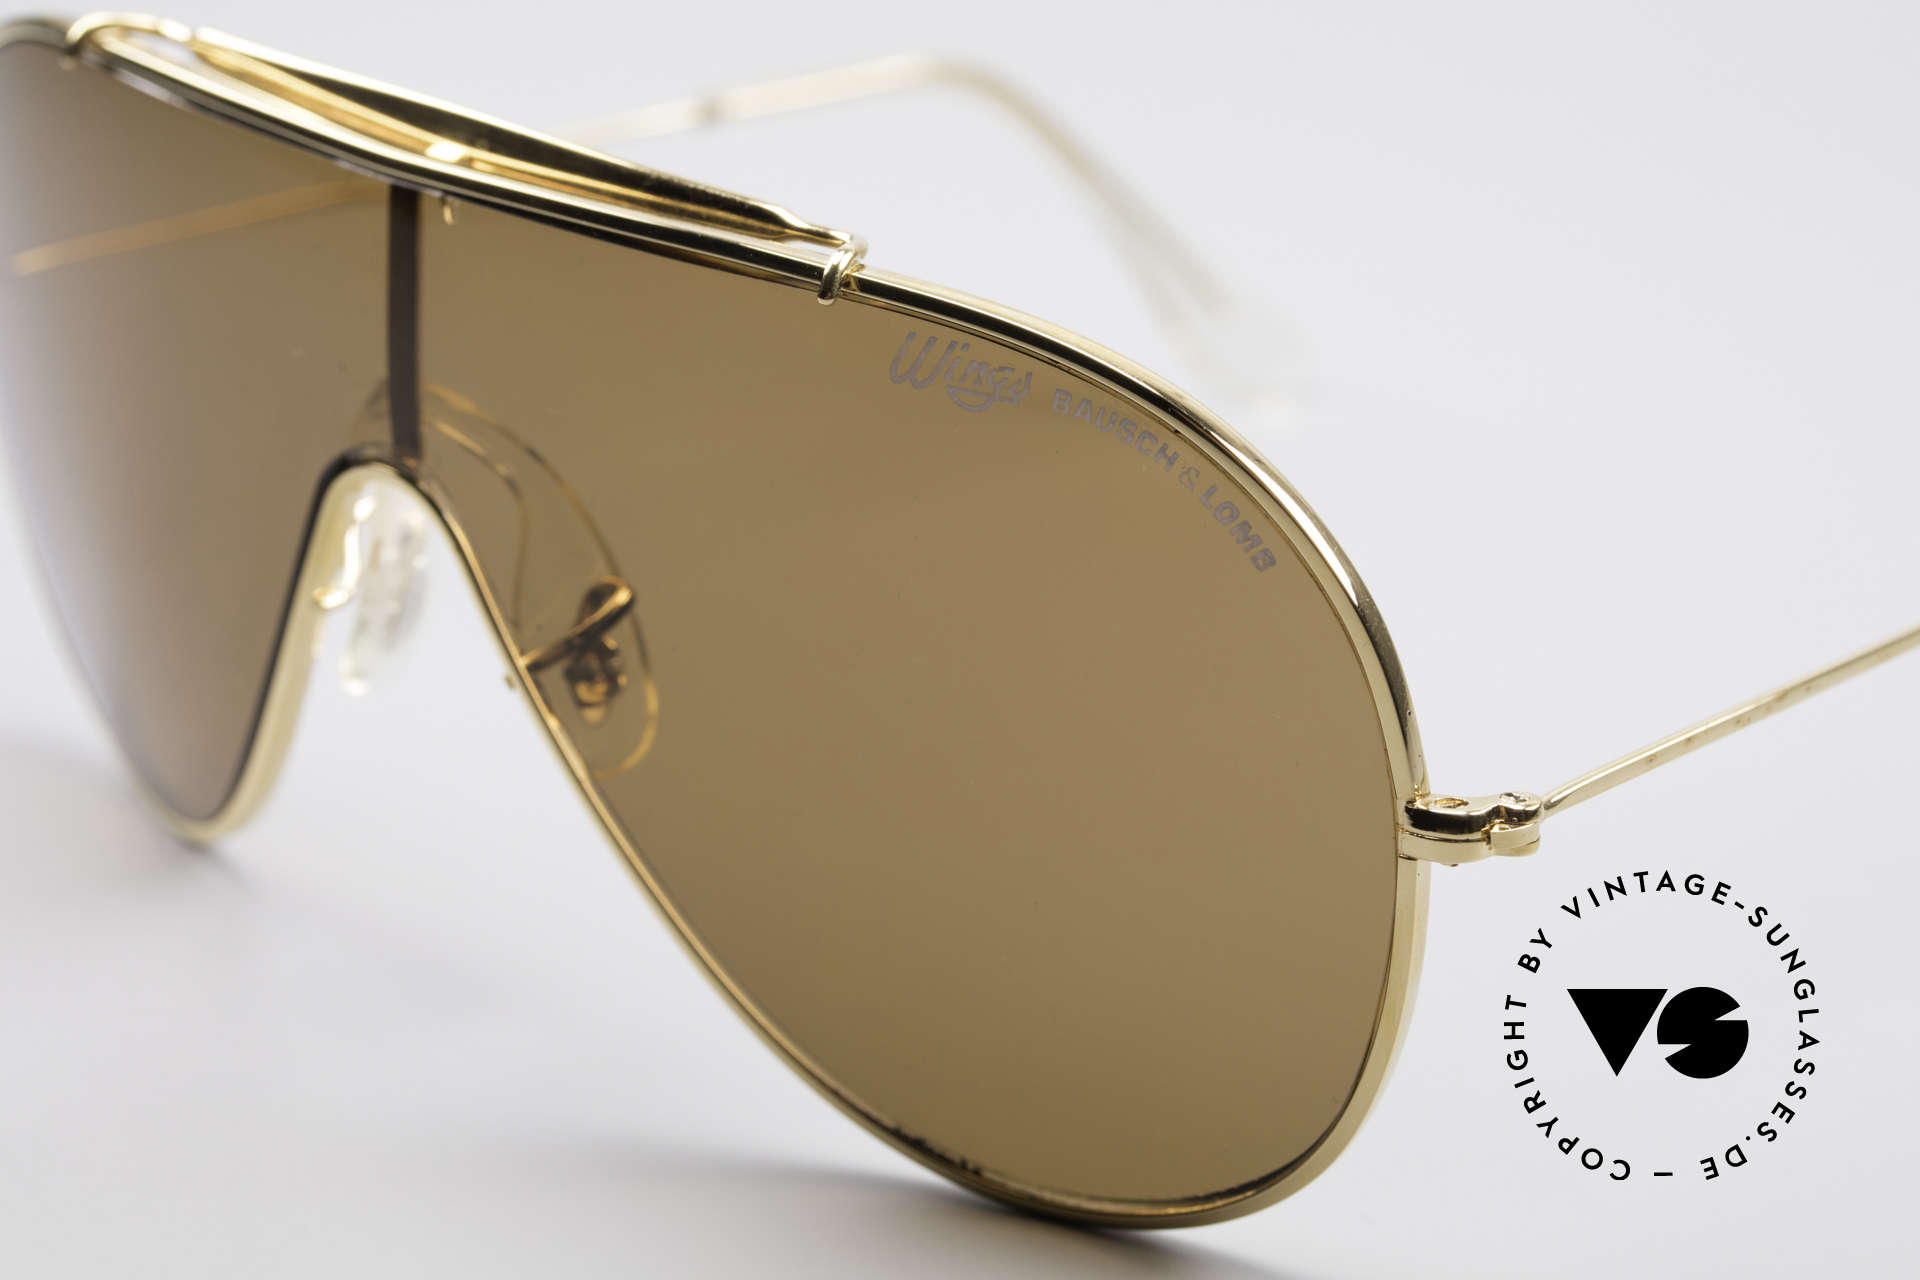 Bausch & Lomb Wings Amber Rose Vintage Shades, NO RETRO sunglasses, but a vintage USA-original, Made for Men and Women